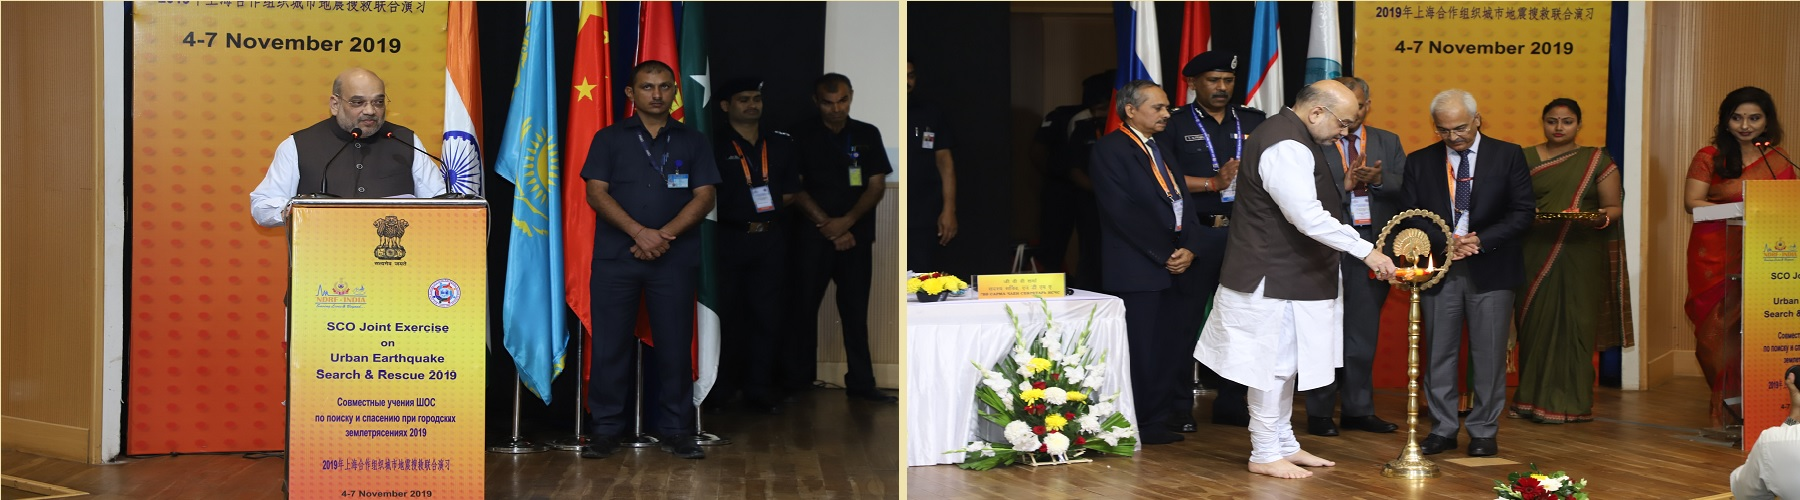 Union Minister for Home Affairs, Shri Amit Shah addressing the inaugural session of the Shanghai Cooperation Organization (SCO) Joint Exercise on Urban Earthquake Search & Rescue (SCOJtEx)-2019 in New Delhi, on November 4, 2019.